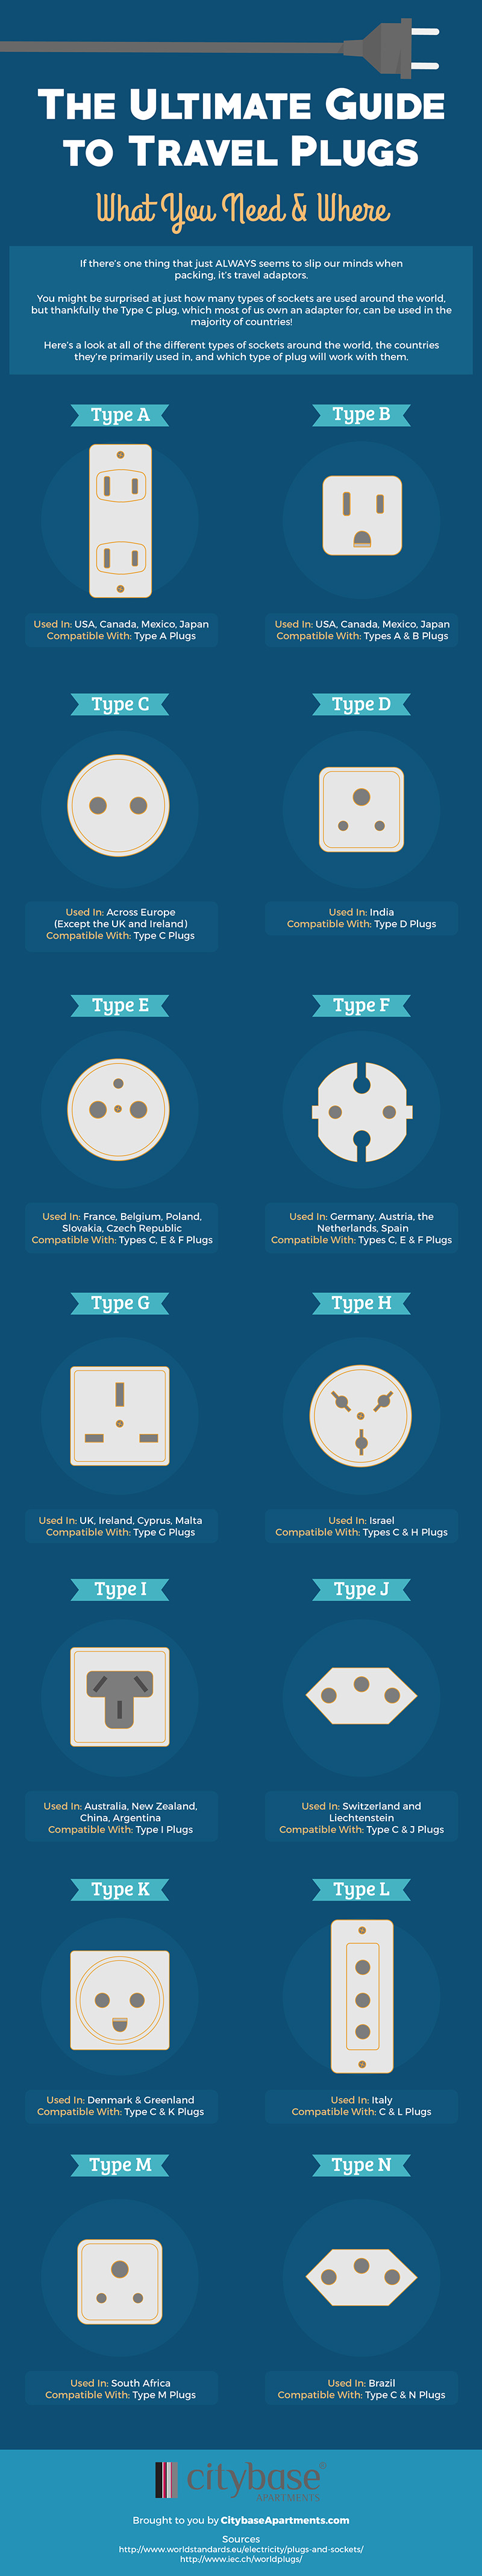 ultimate-guide-to-travel-plugs